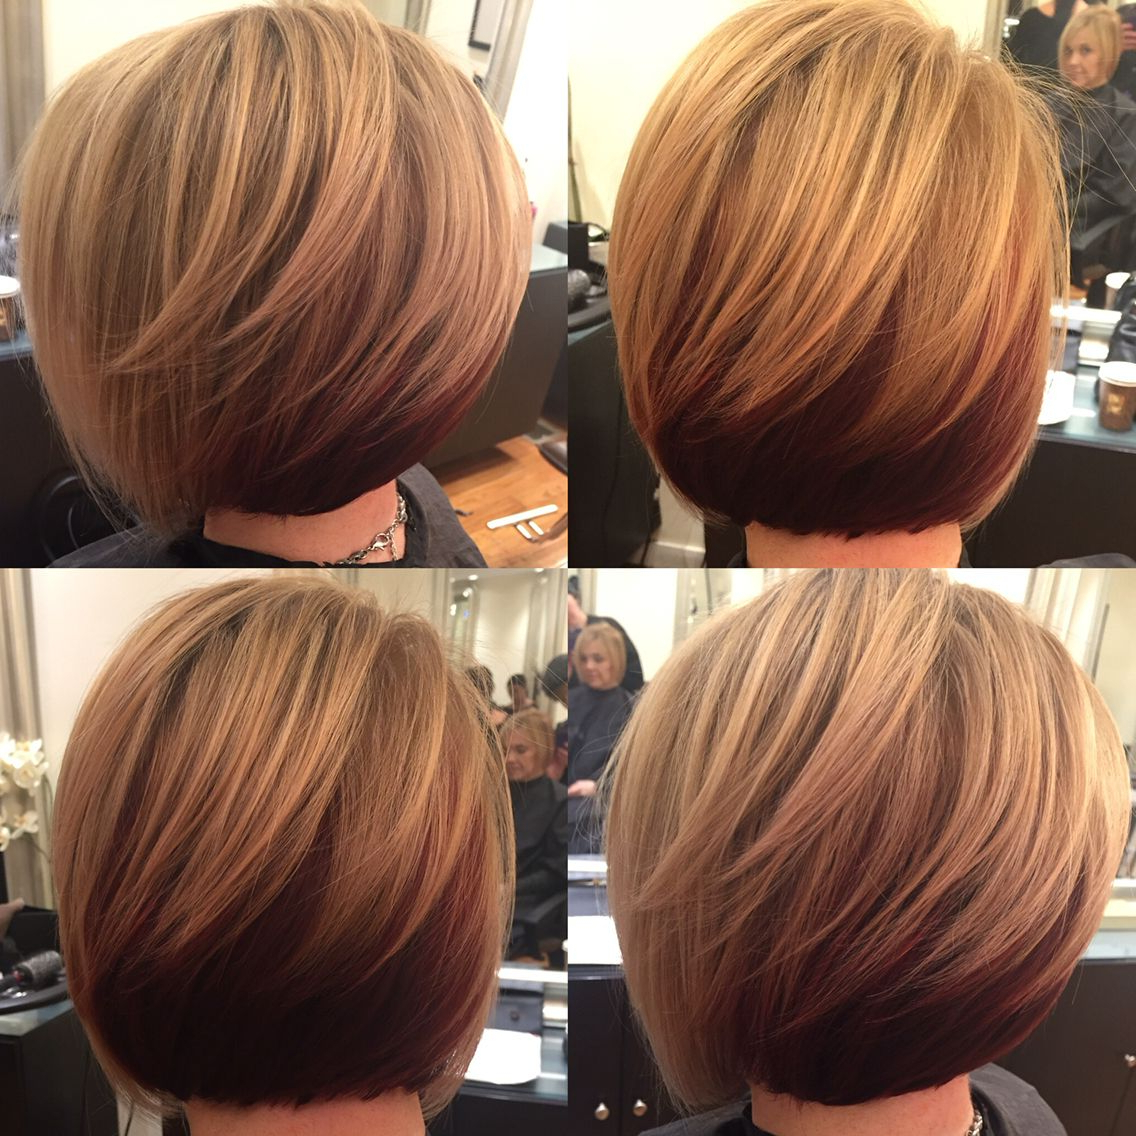 Short Slightly Stacked Bob W/ Highlights On Dark Blonde Base W Inside Pixie Bob Hairstyles With Blonde Babylights (View 15 of 20)